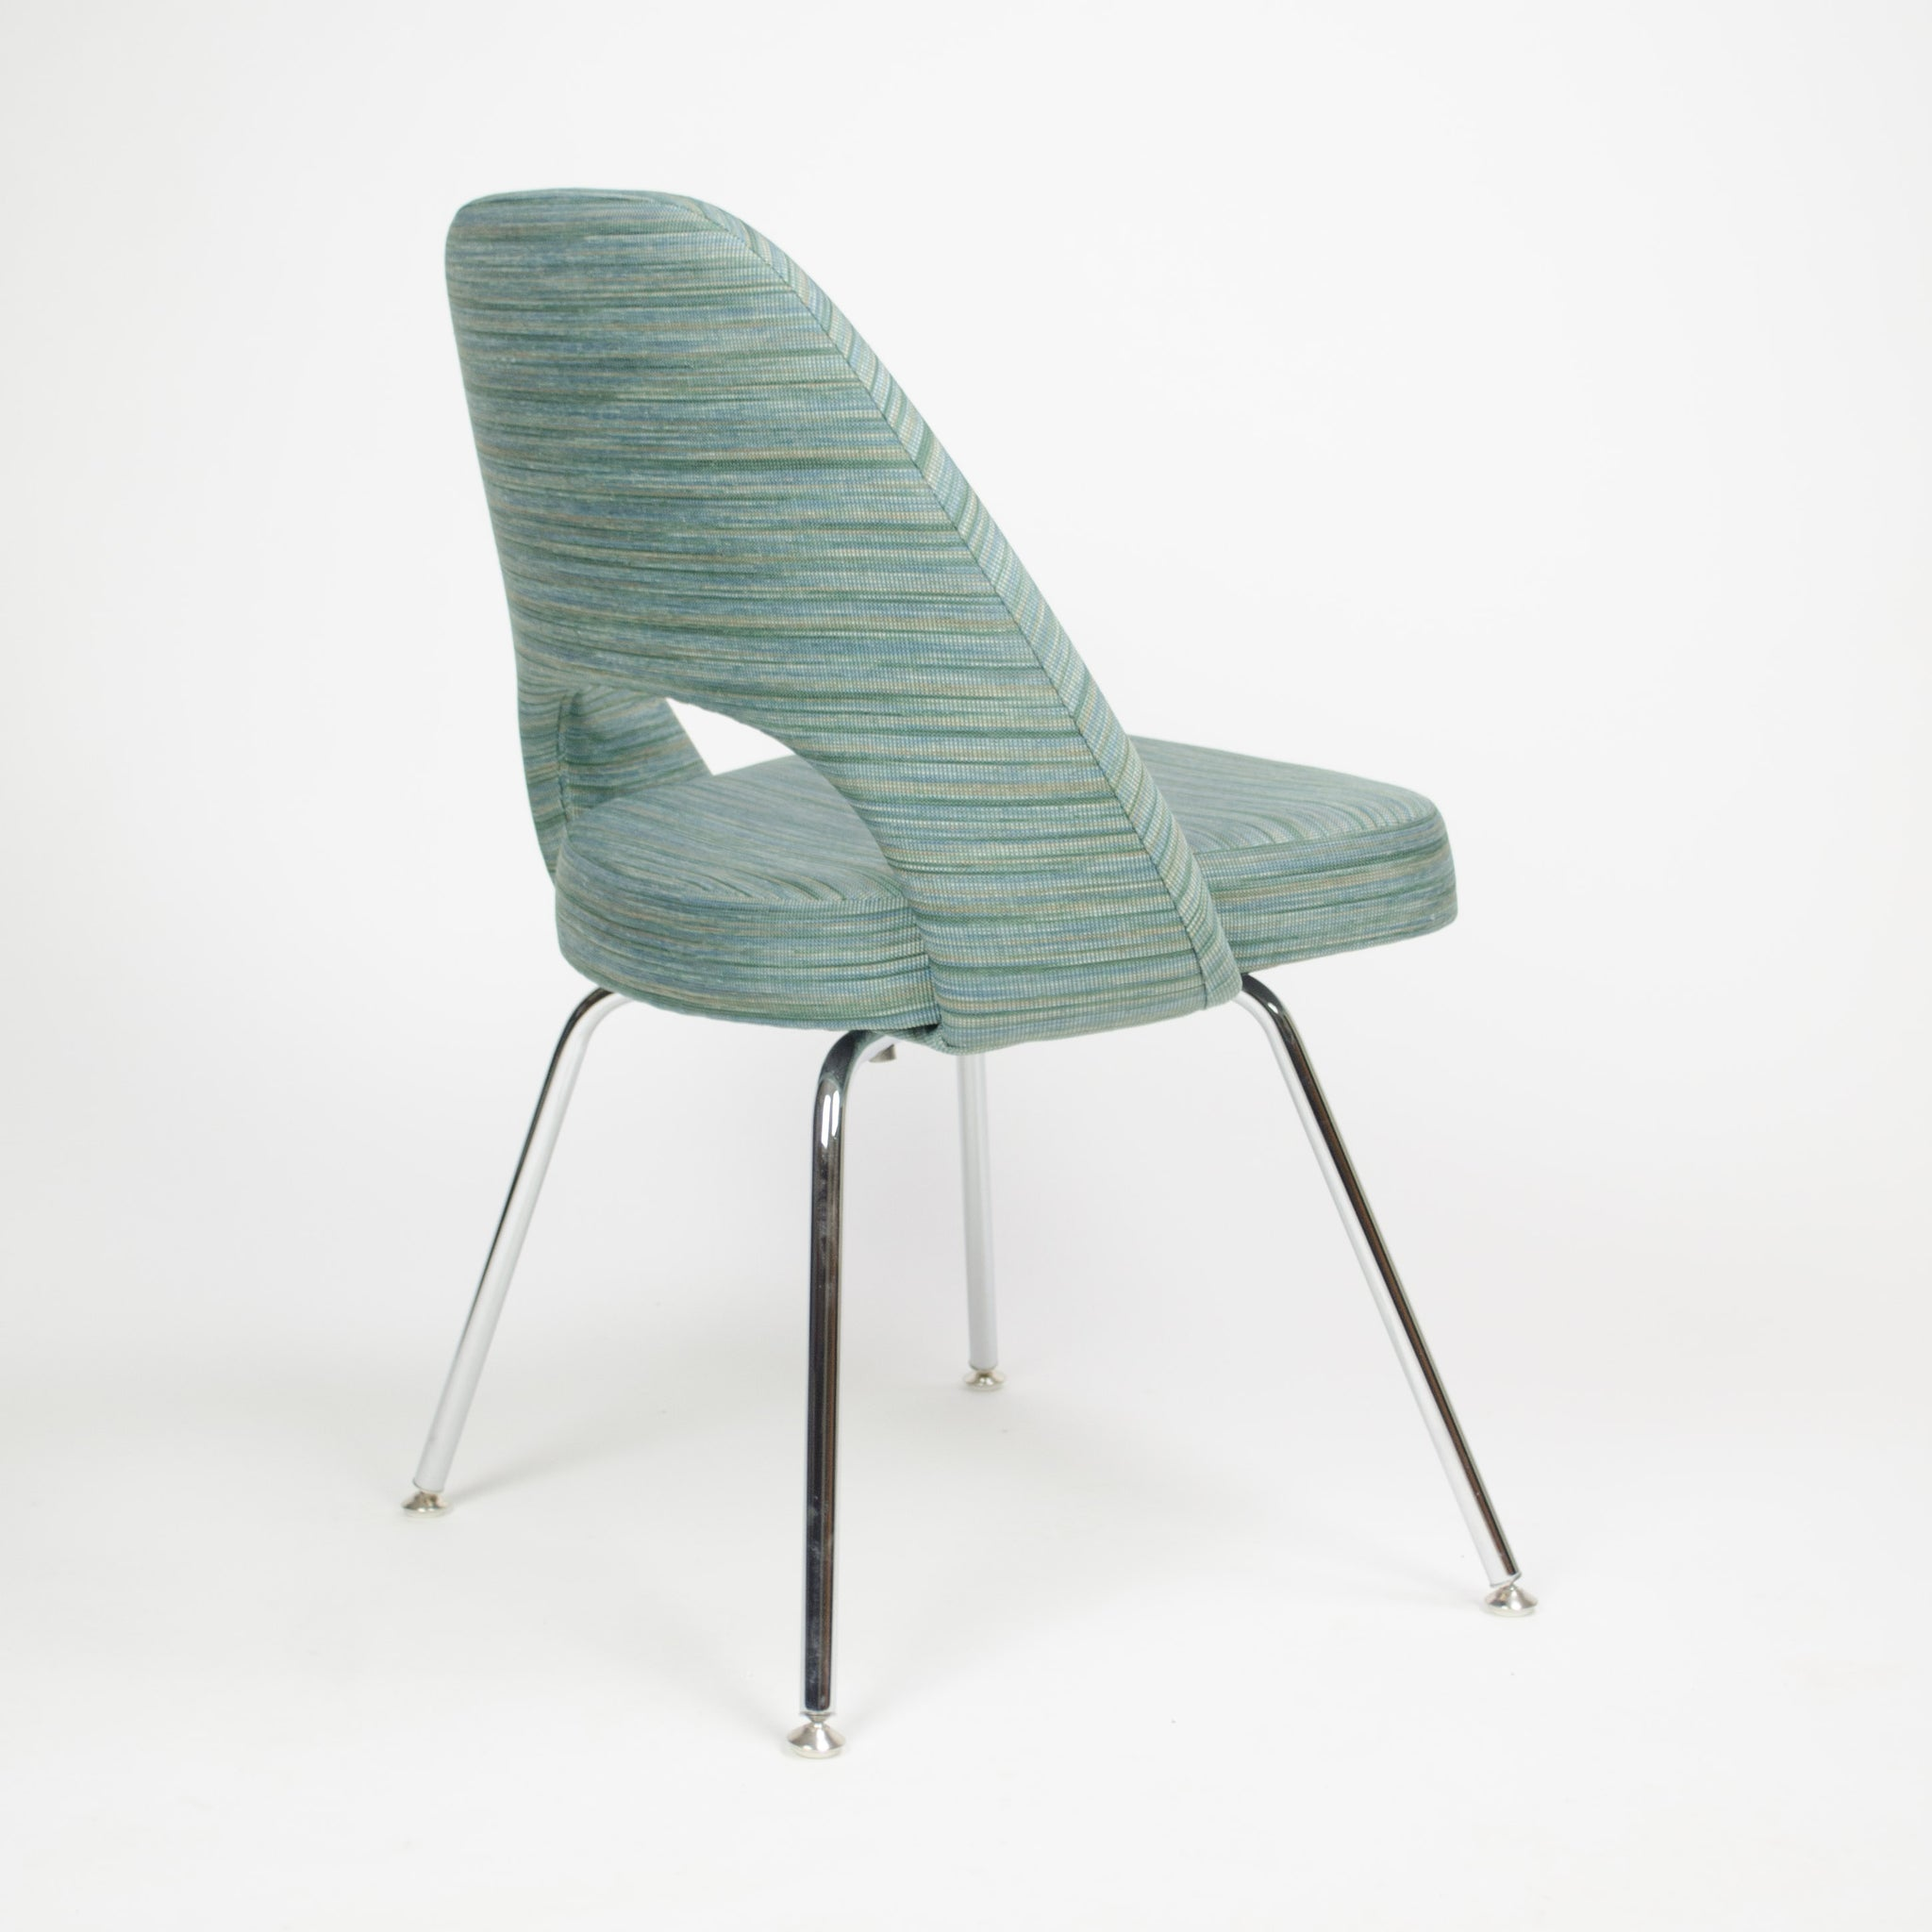 SOLD 2011 Knoll Eero Saarinen Armless Executive Chairs Fabric Sets Avail MINT!